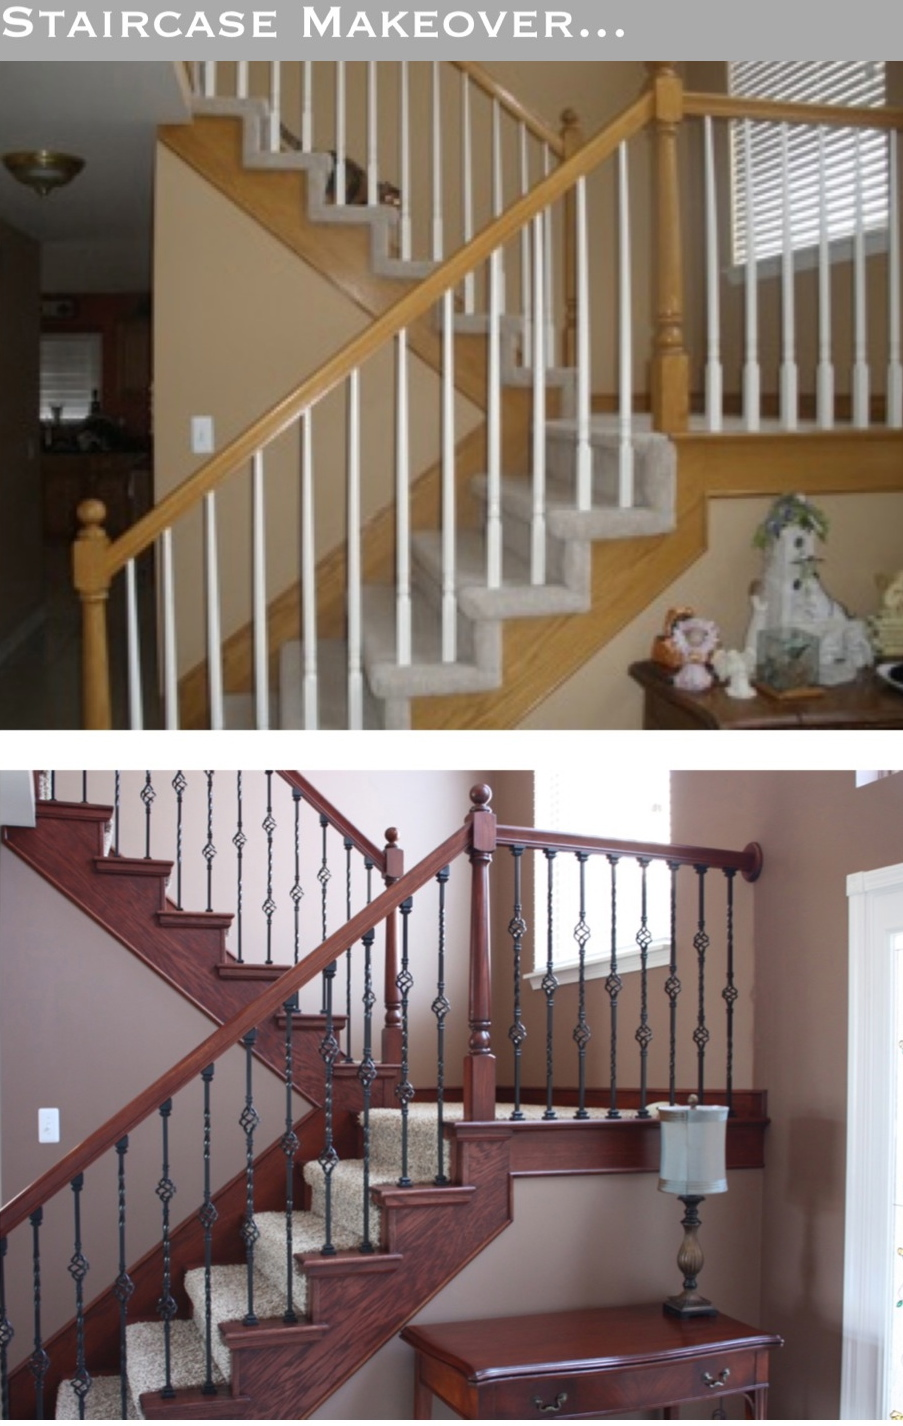 The Yellow Cape Cod Staircase Makeover~Before and After